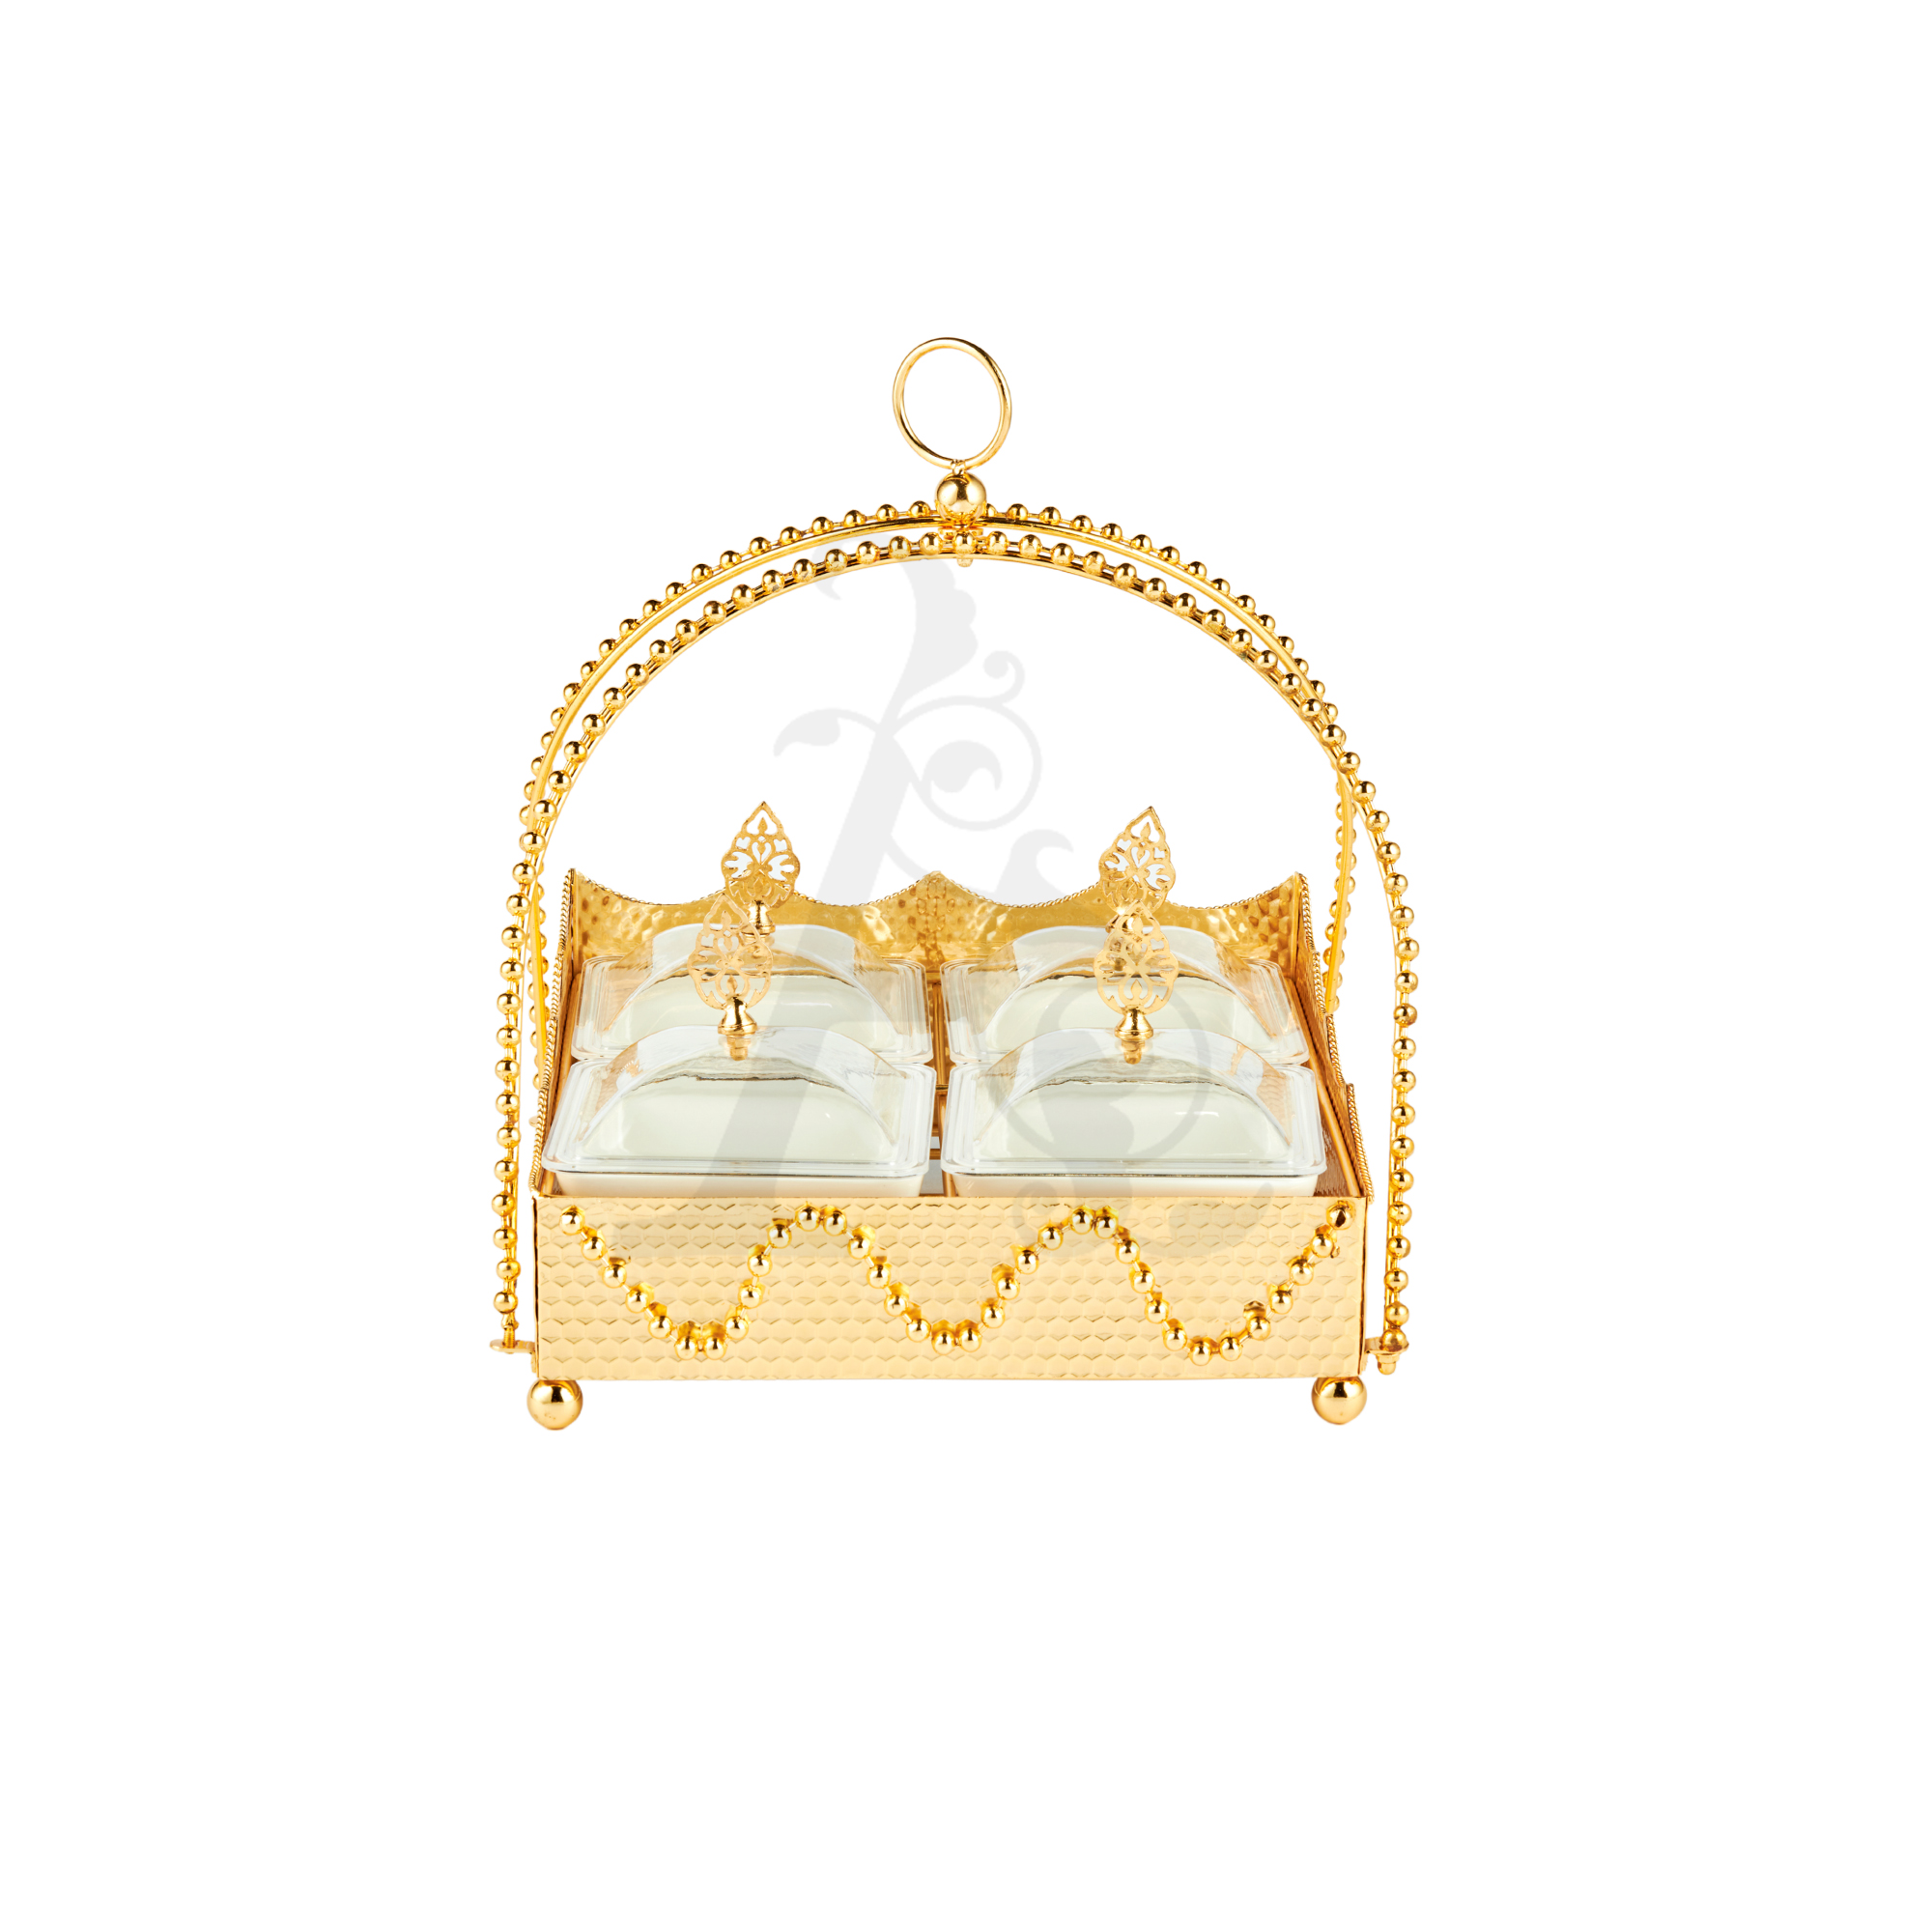 Buy Delight Servers Square 4 Pieces Gold and White 26x26